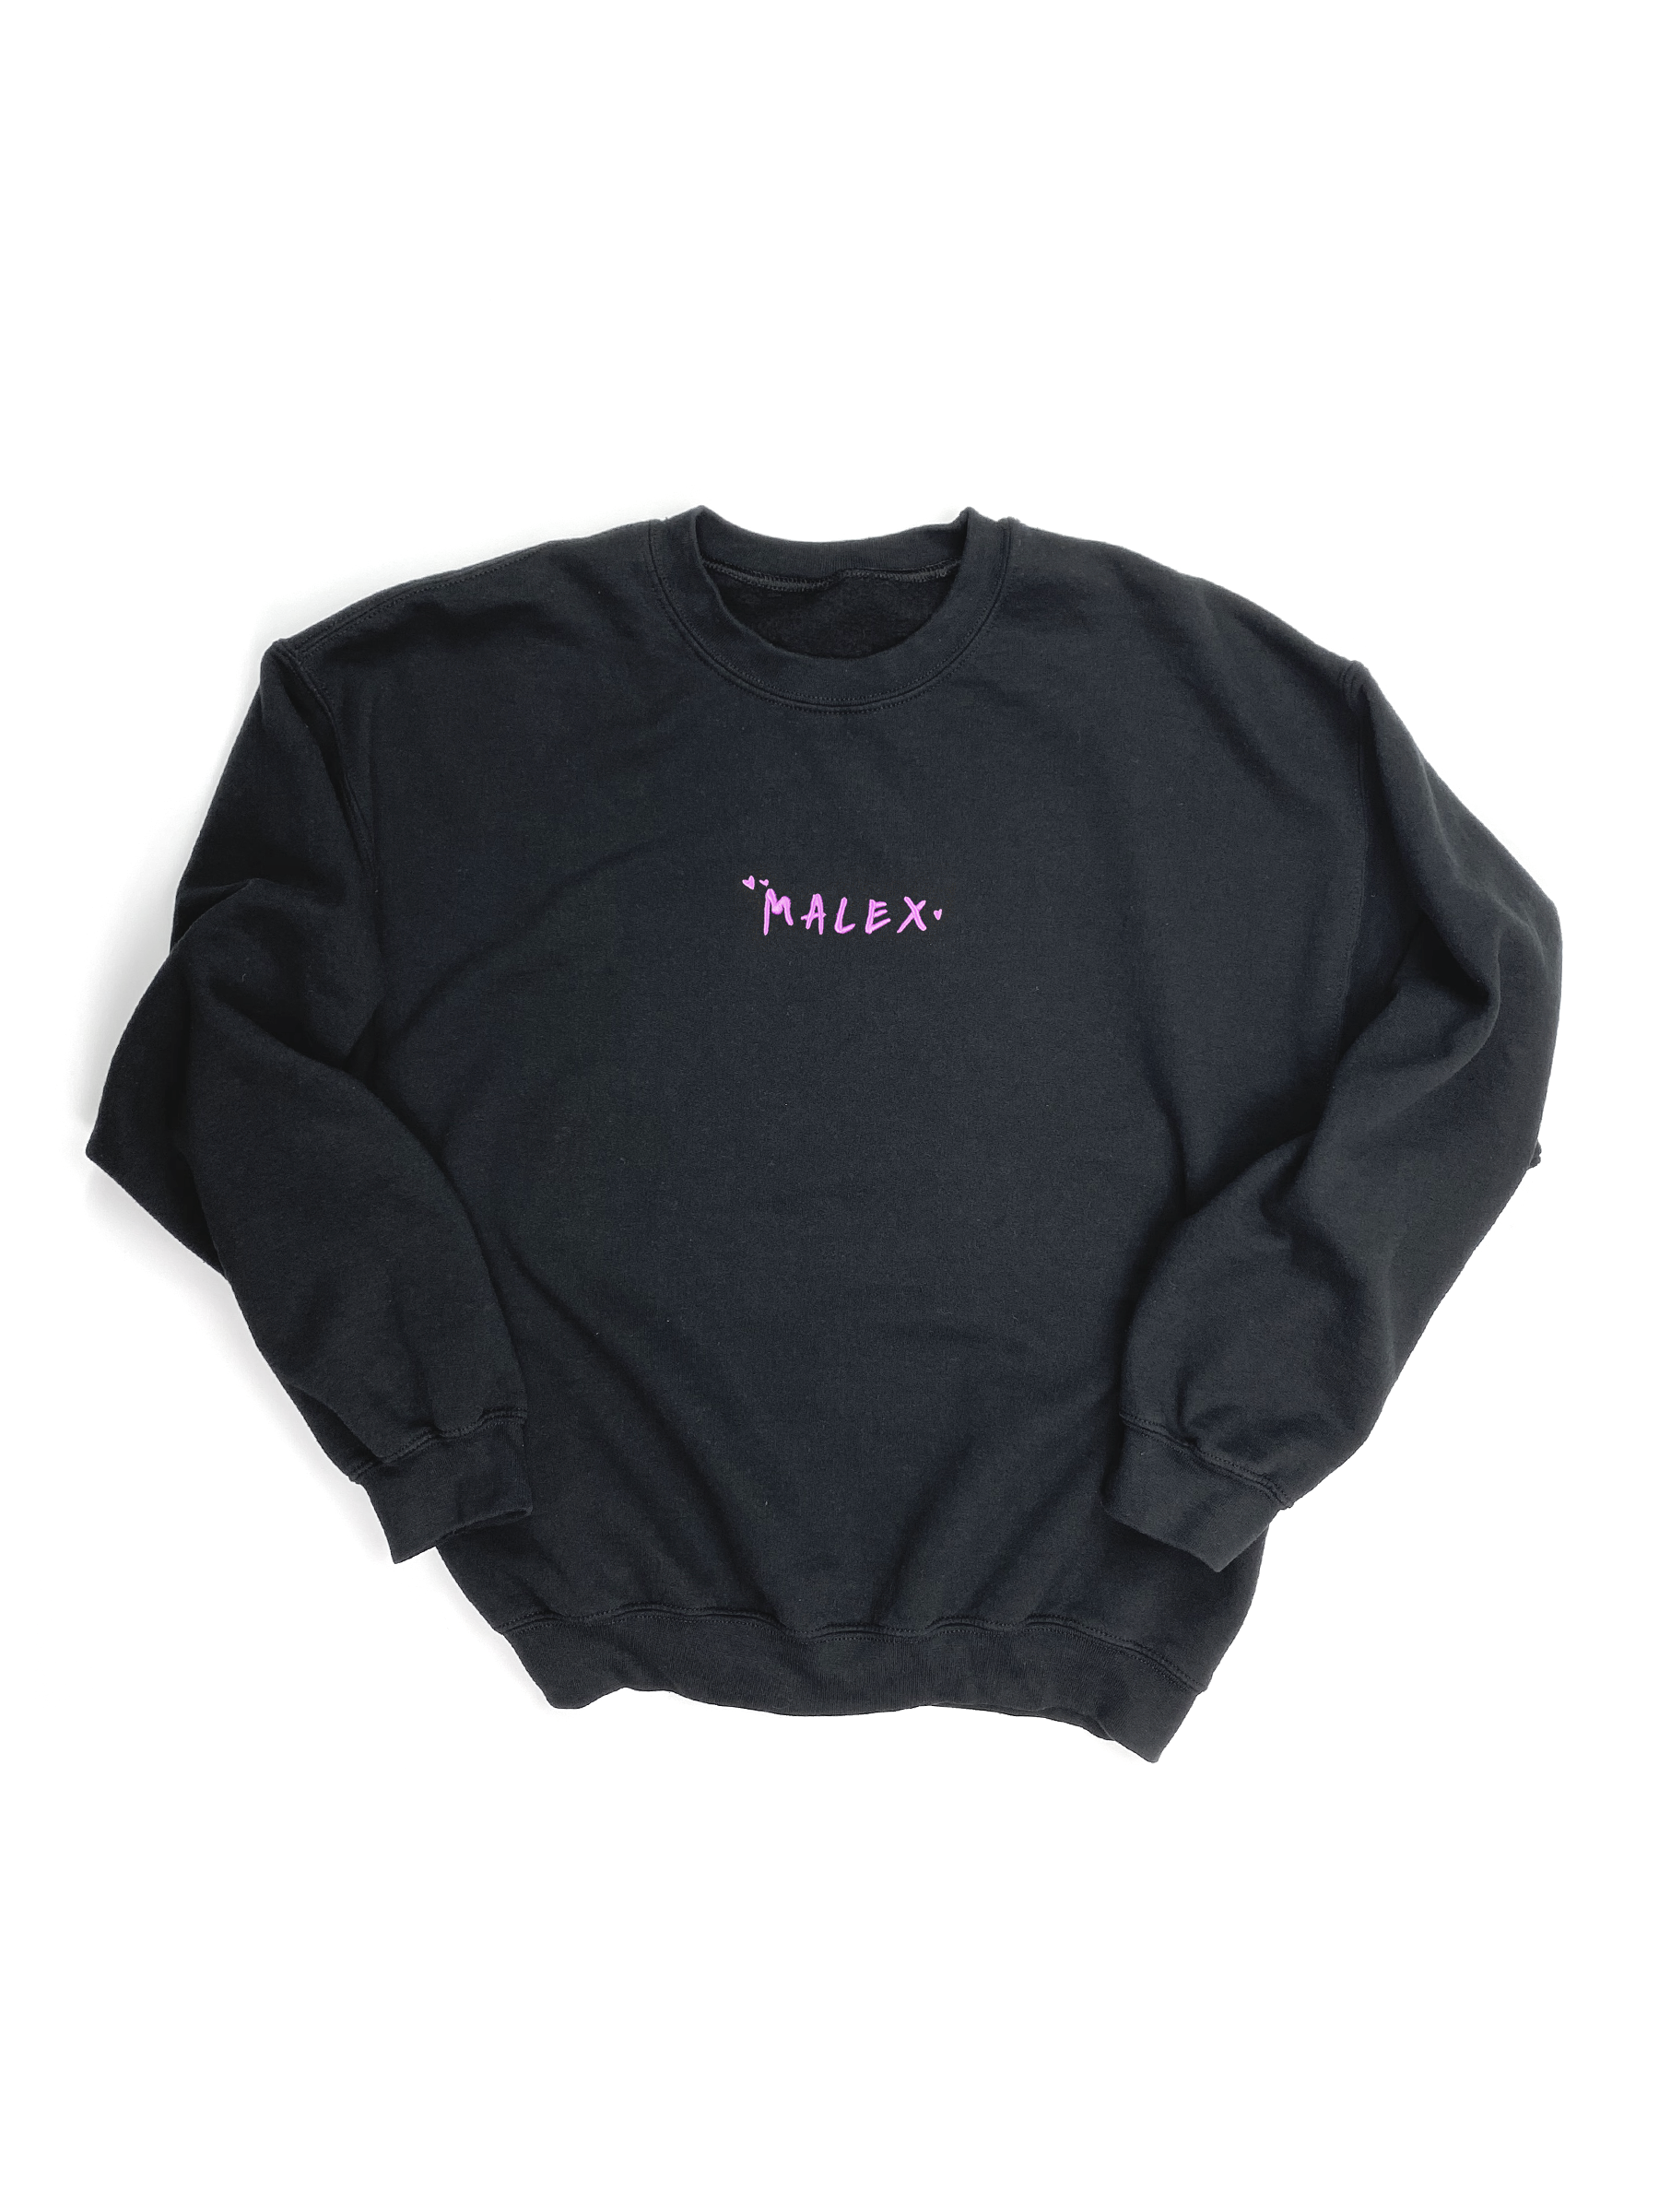 MALEX EMBROIDERED BLACK CREWNECK SWEATSHIRT